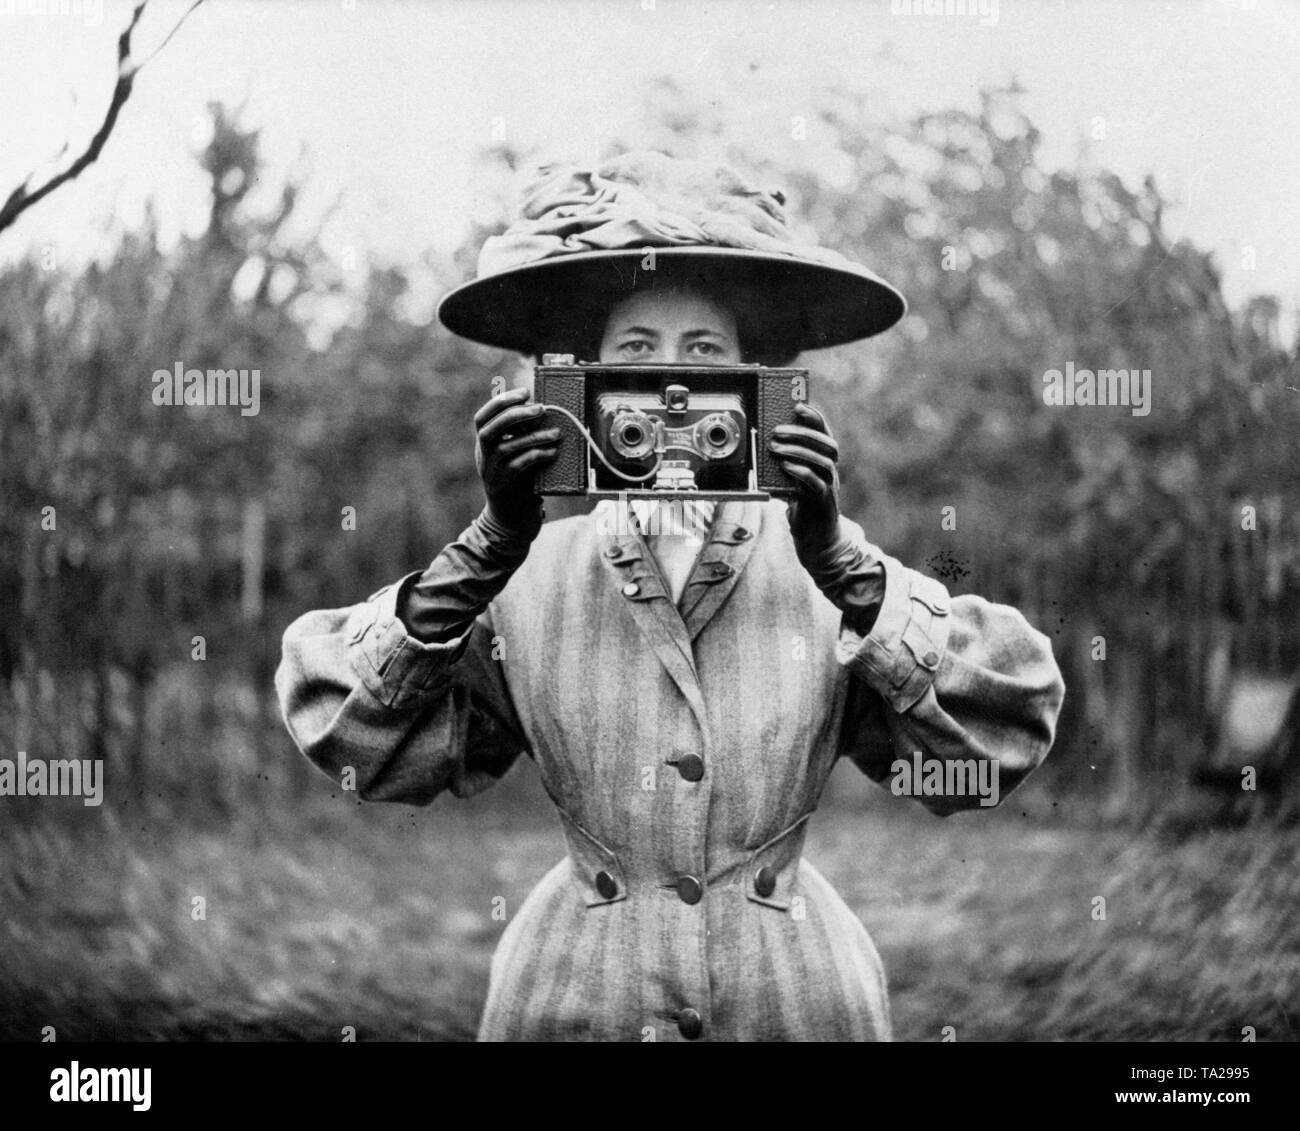 A woman presents the 'No. 2 stereo Brownie camera', which appeared in 1908 as a novelty on the photographic market. - Stock Image